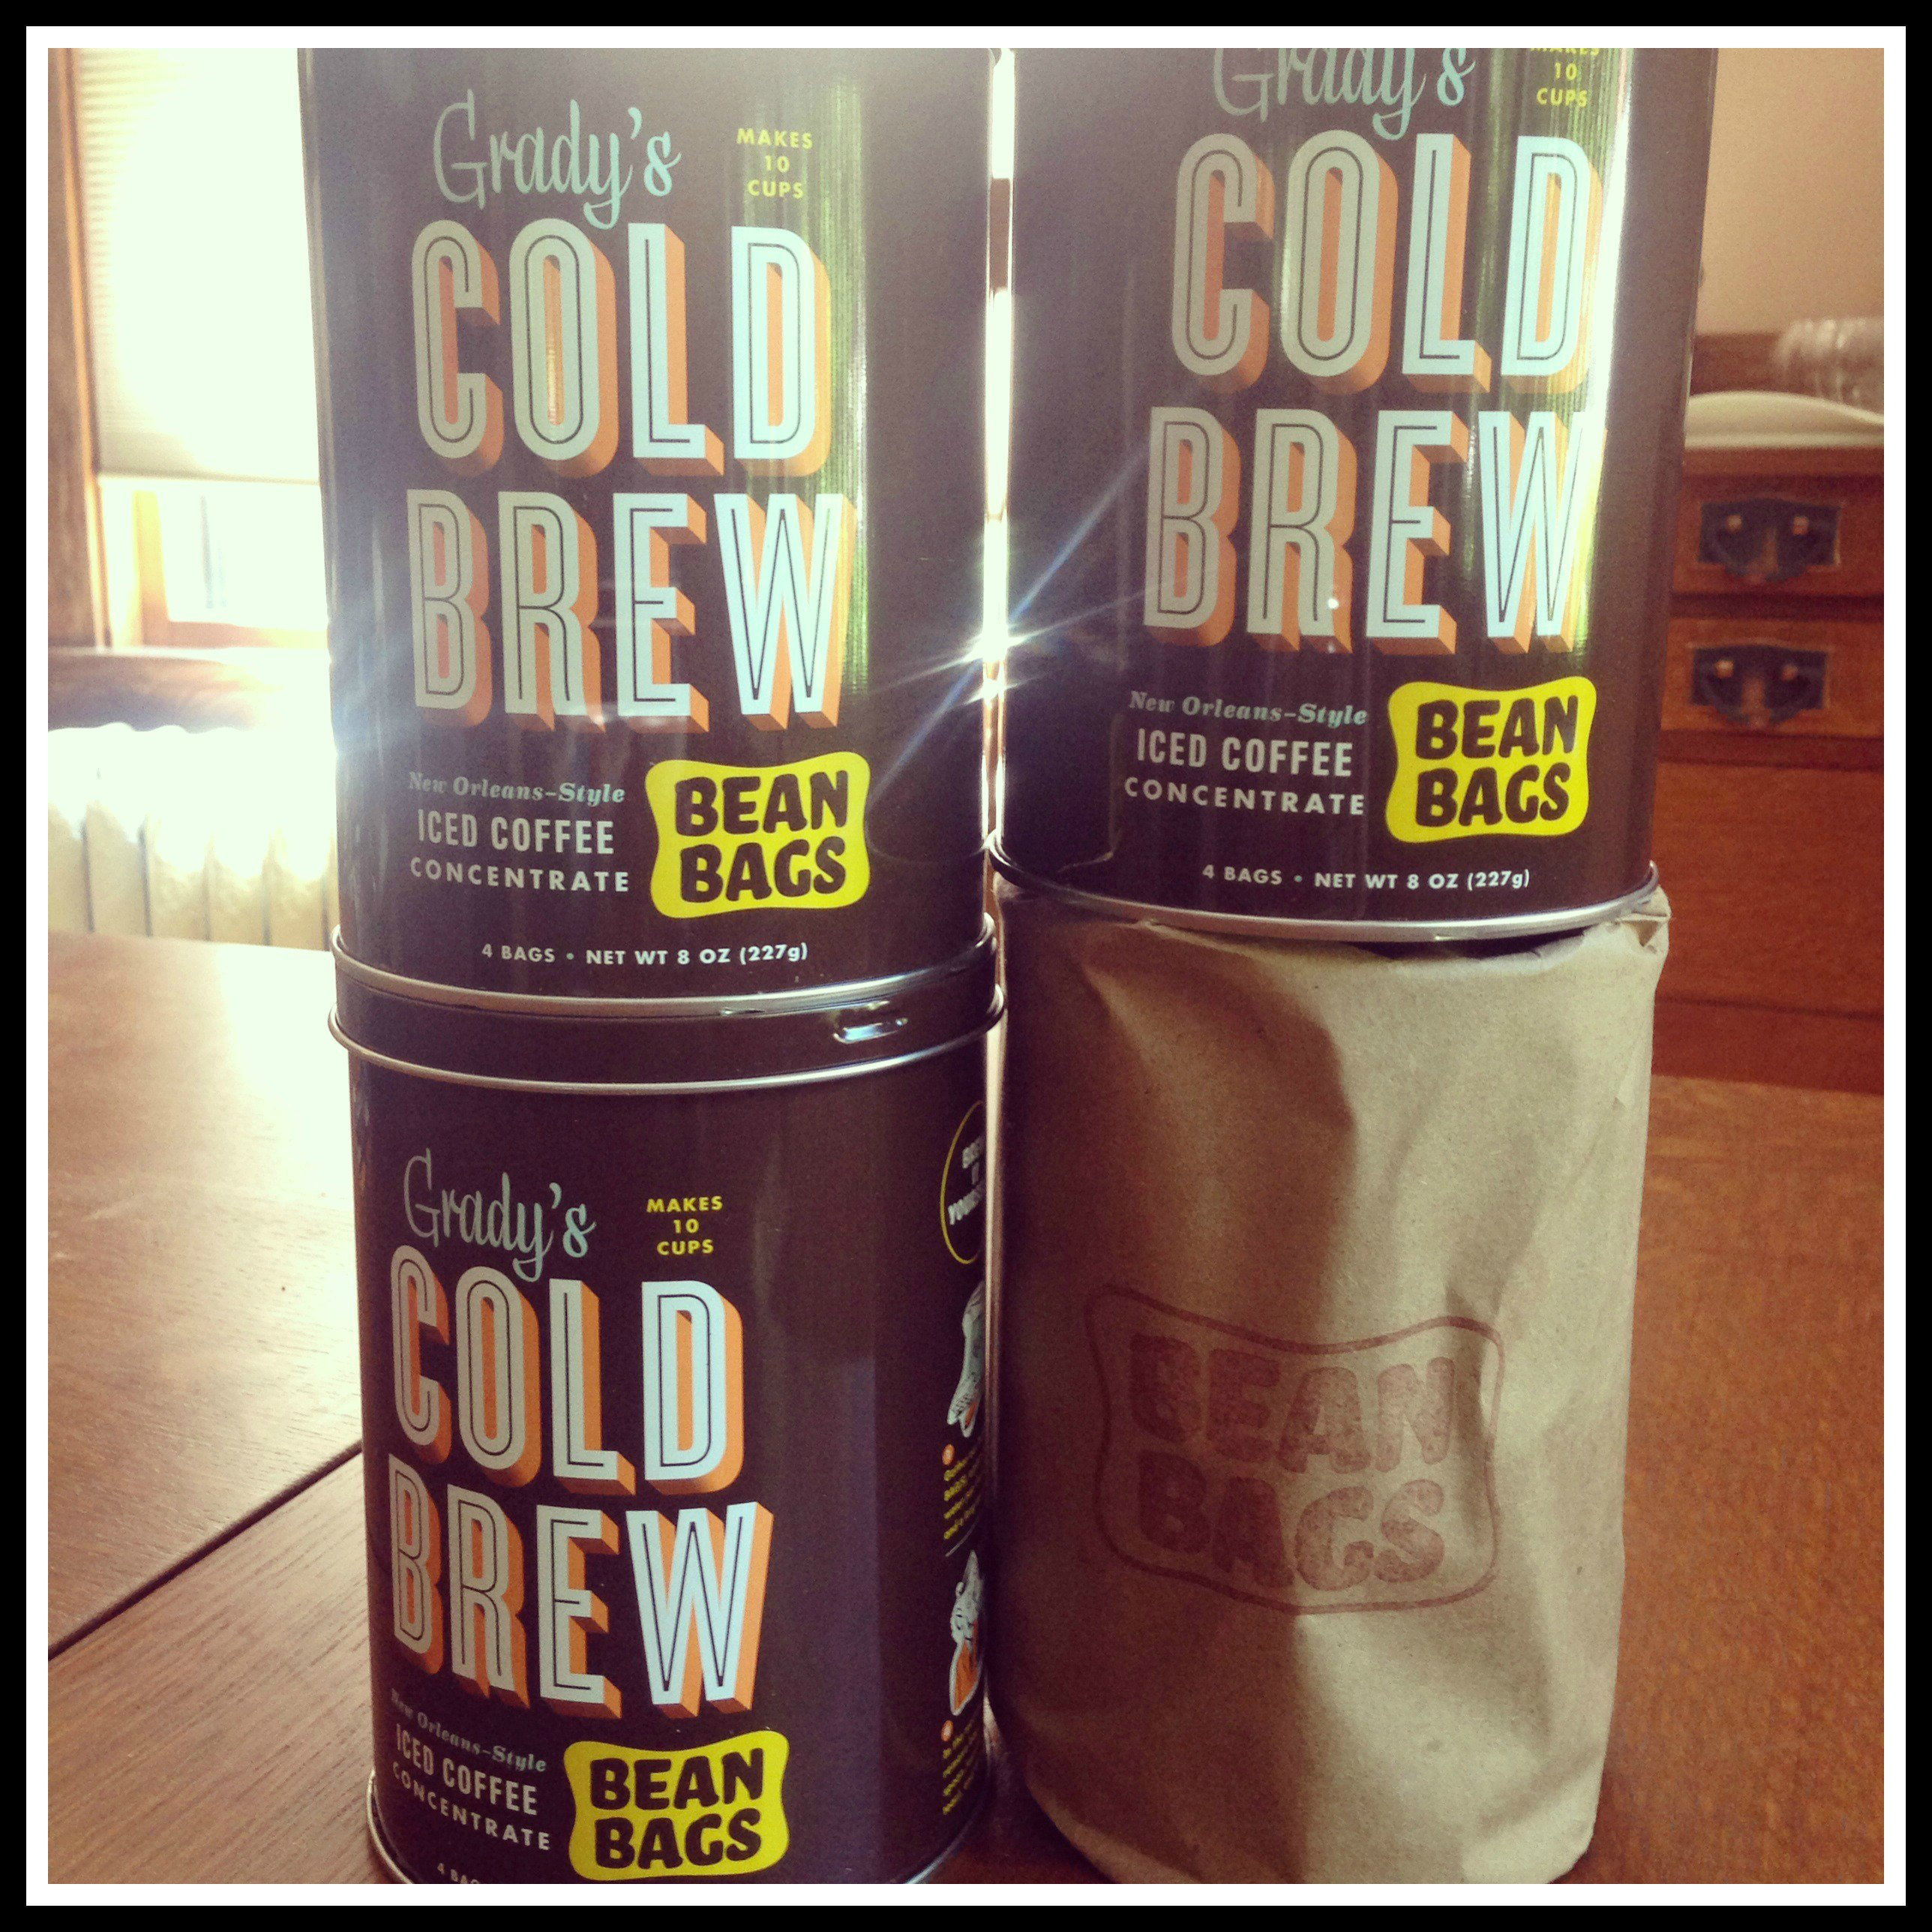 Grady's Cold Brew Iced Coffee Bean Bags